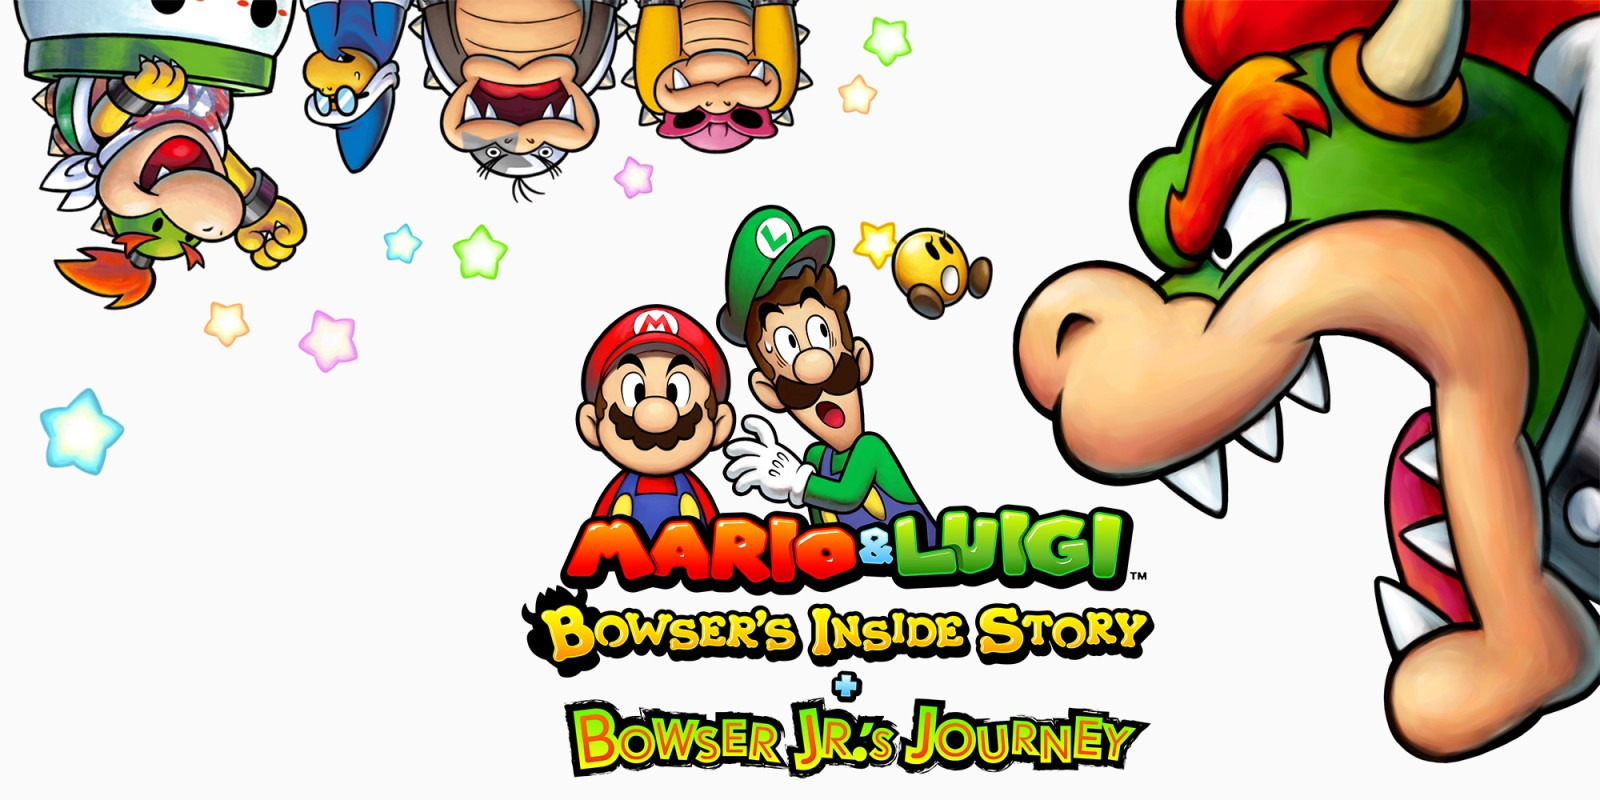 Bowser's Inside Story, Bowser Jr.'s Journey